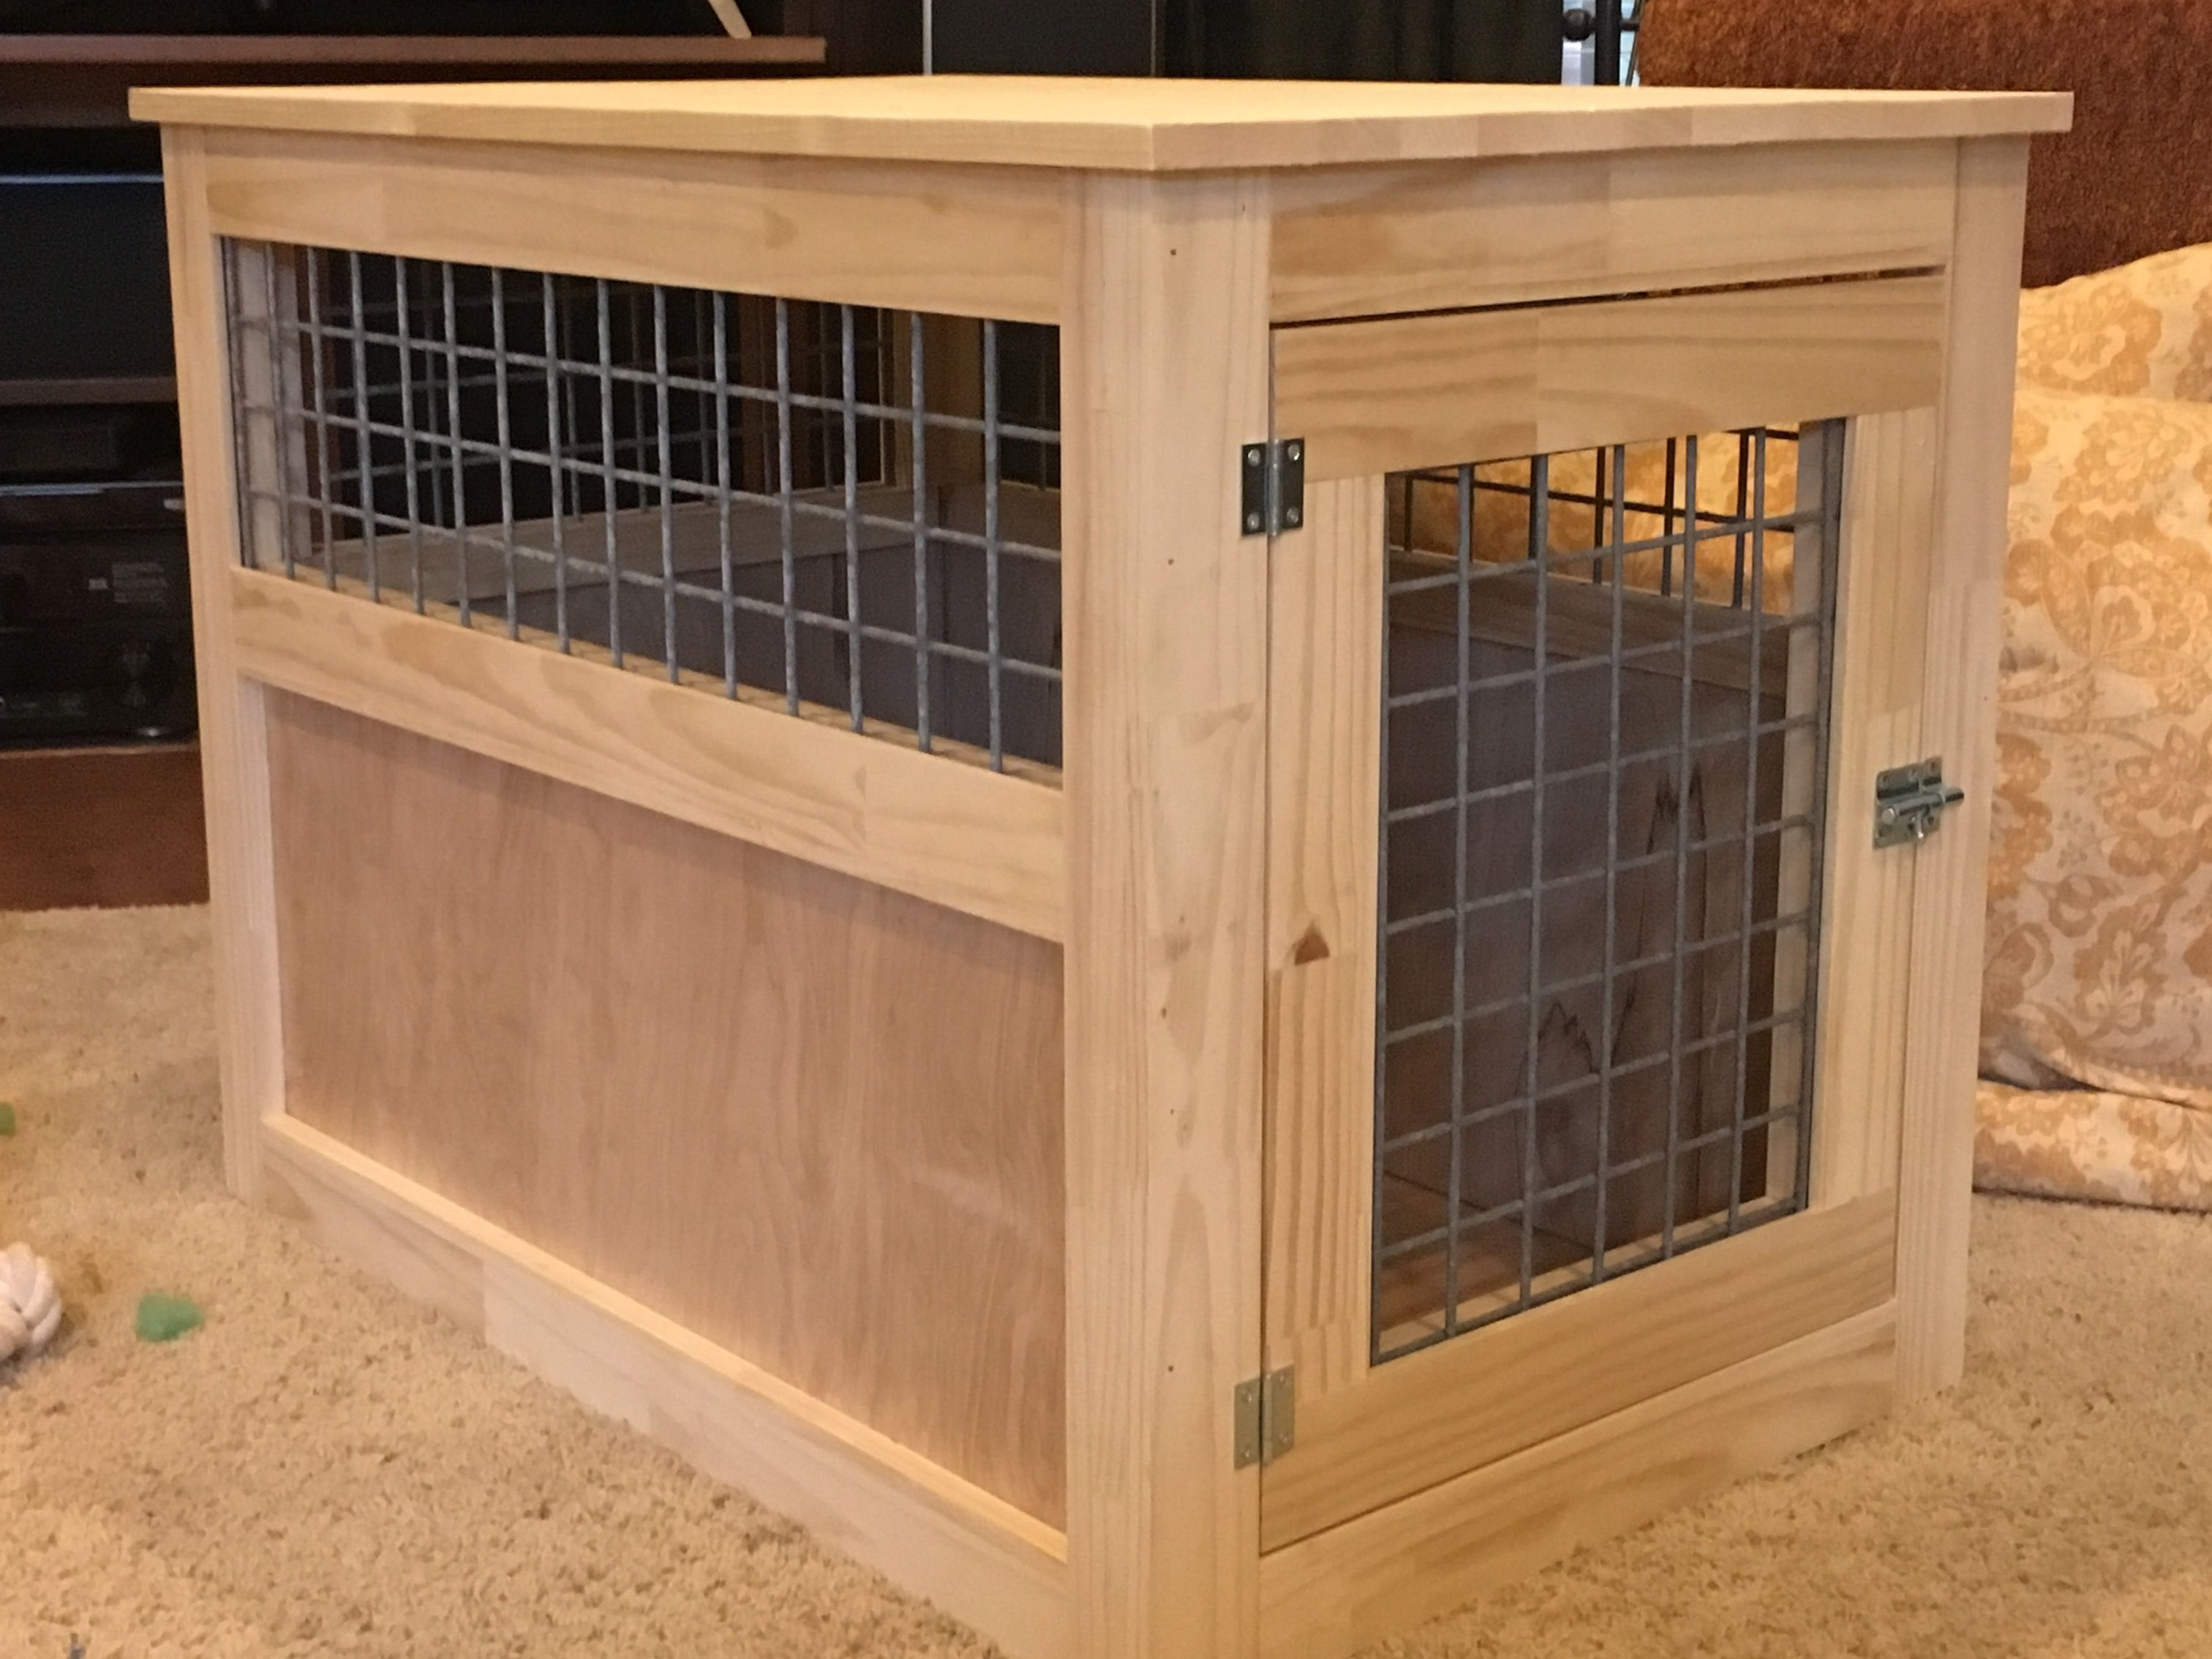 slightly altered large dog kennel end table yourself home crate plans projects from ana white lay boy sofa enclosed tables buffet cabinet nesting set coffee sets oak with storage